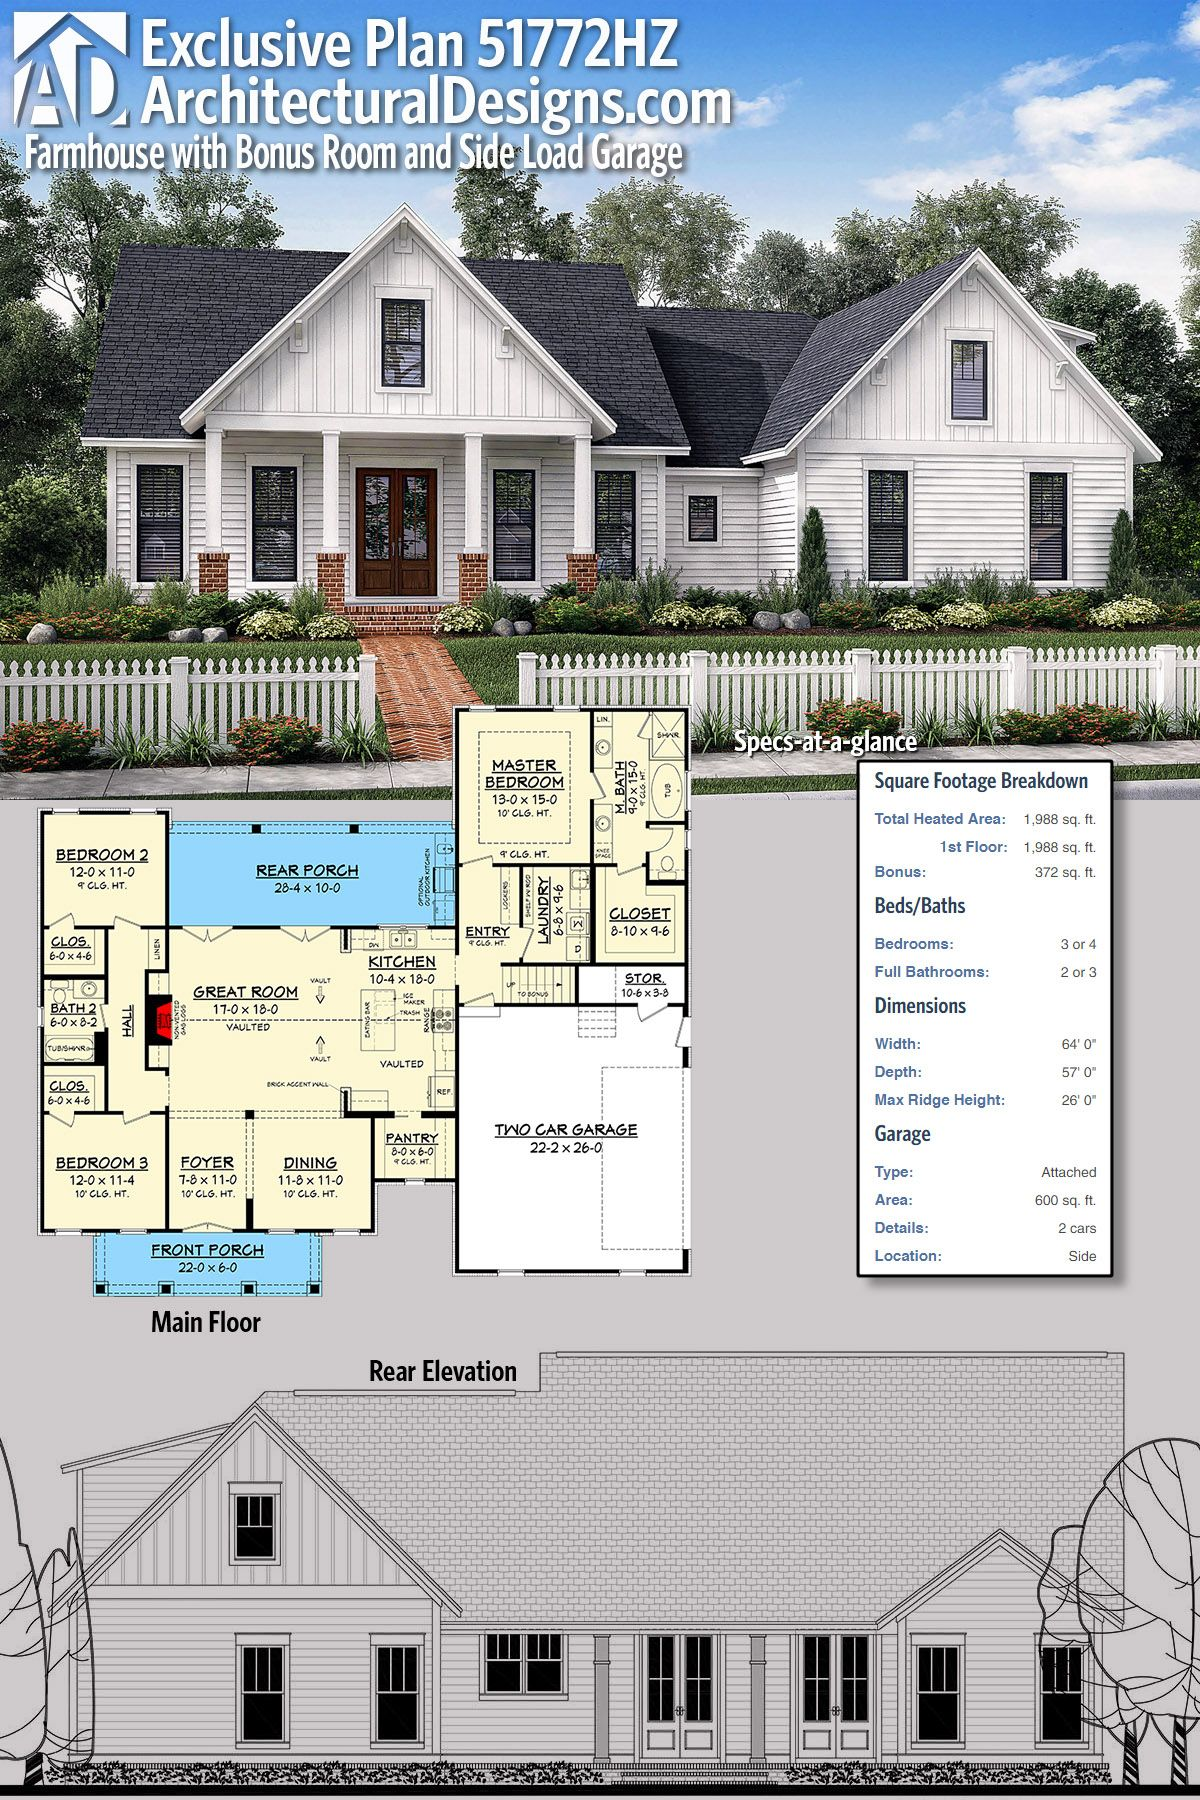 Exclusive farmhouse with bonus room and side load garage plan 51772hz gives you just under 2000 square feet of heated living space plus a bonus room over